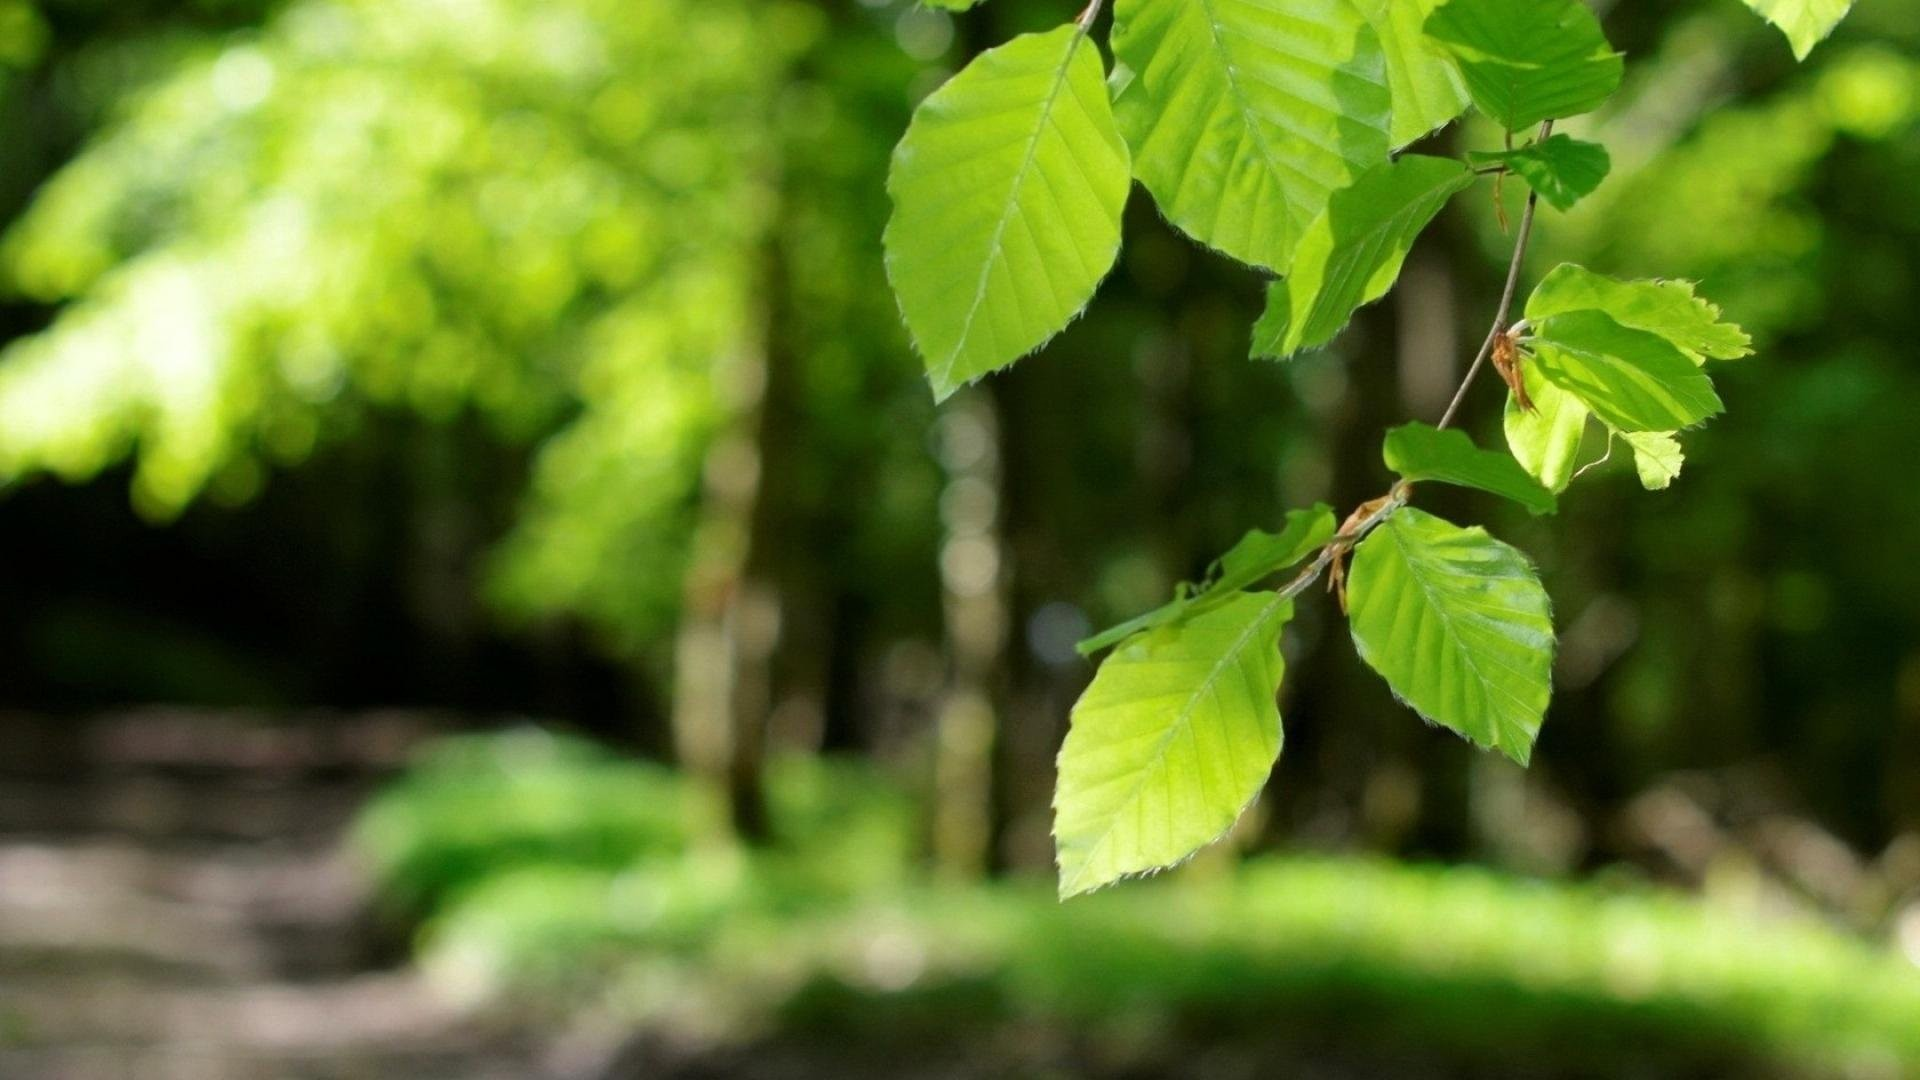 Spring Nature Light Young Leaves Green Landscapess